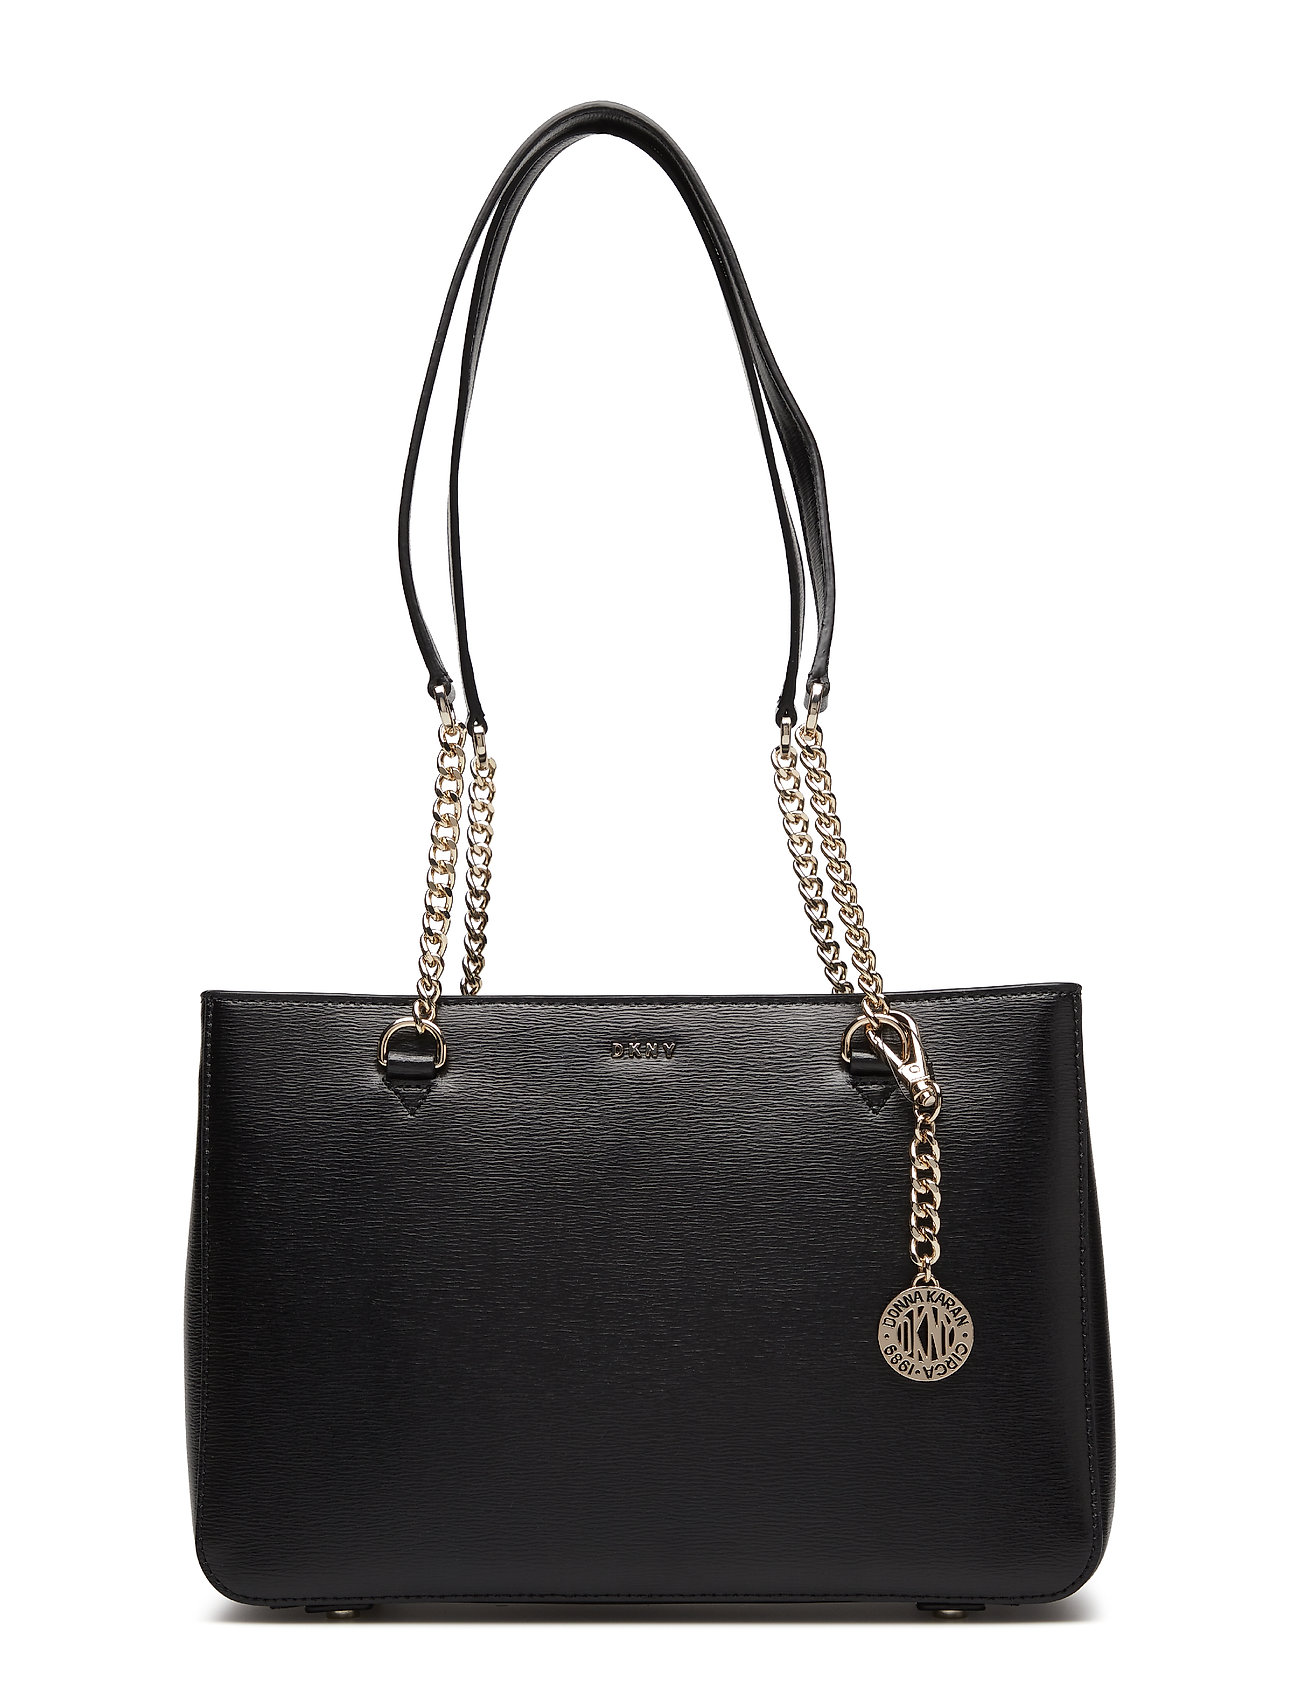 DKNY Bags BRYANT - BLK/GOLD